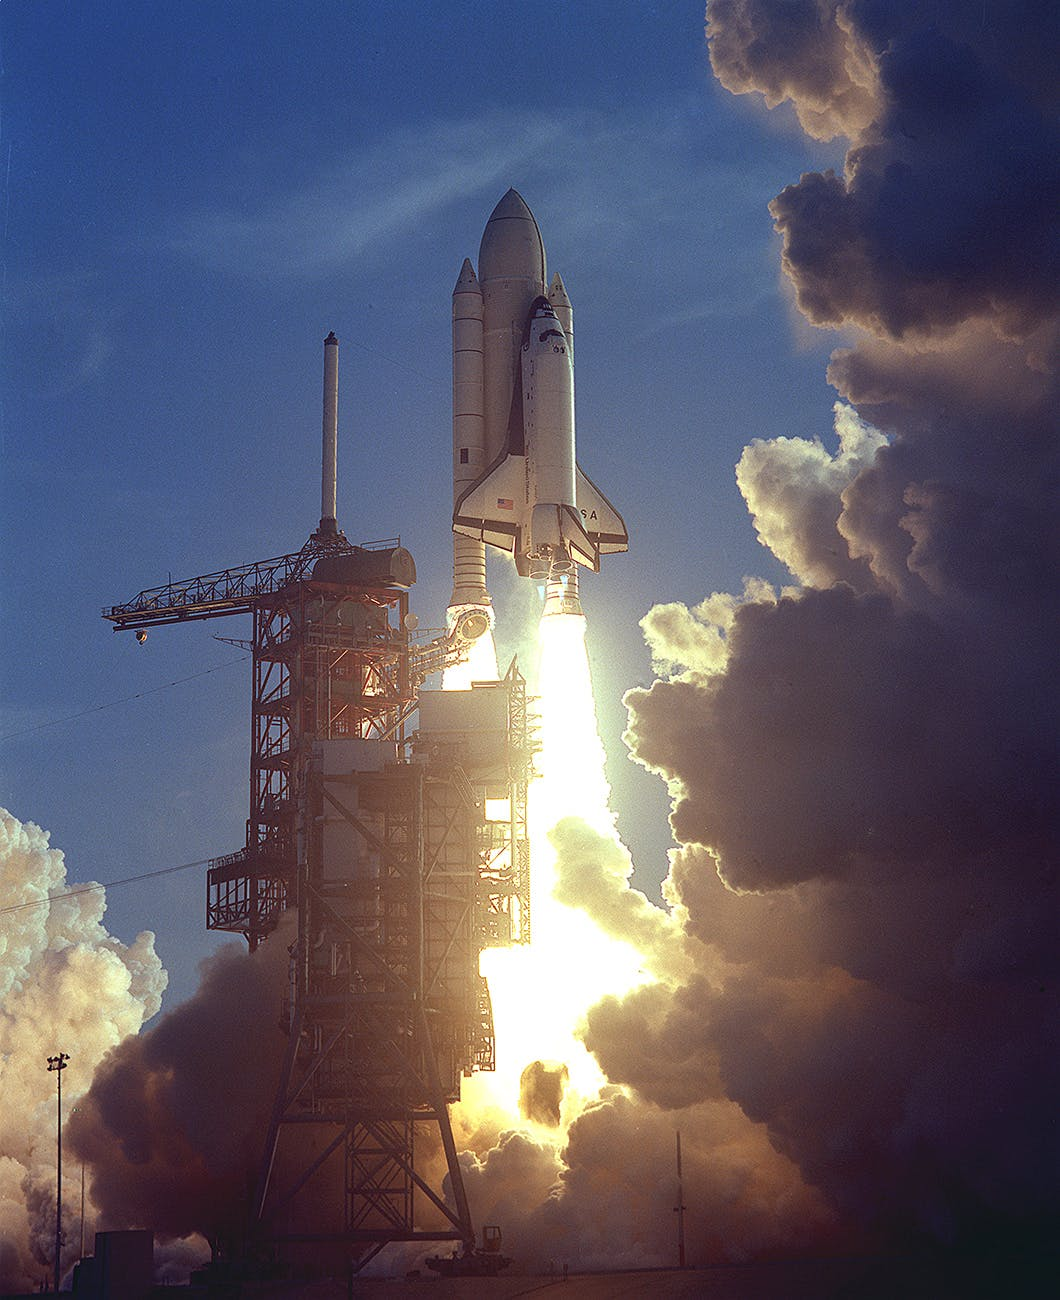 The space shuttle <em>Columbia</em> launches on April 12, 1981 manned with two astronauts, John Young and Robert Crippen.